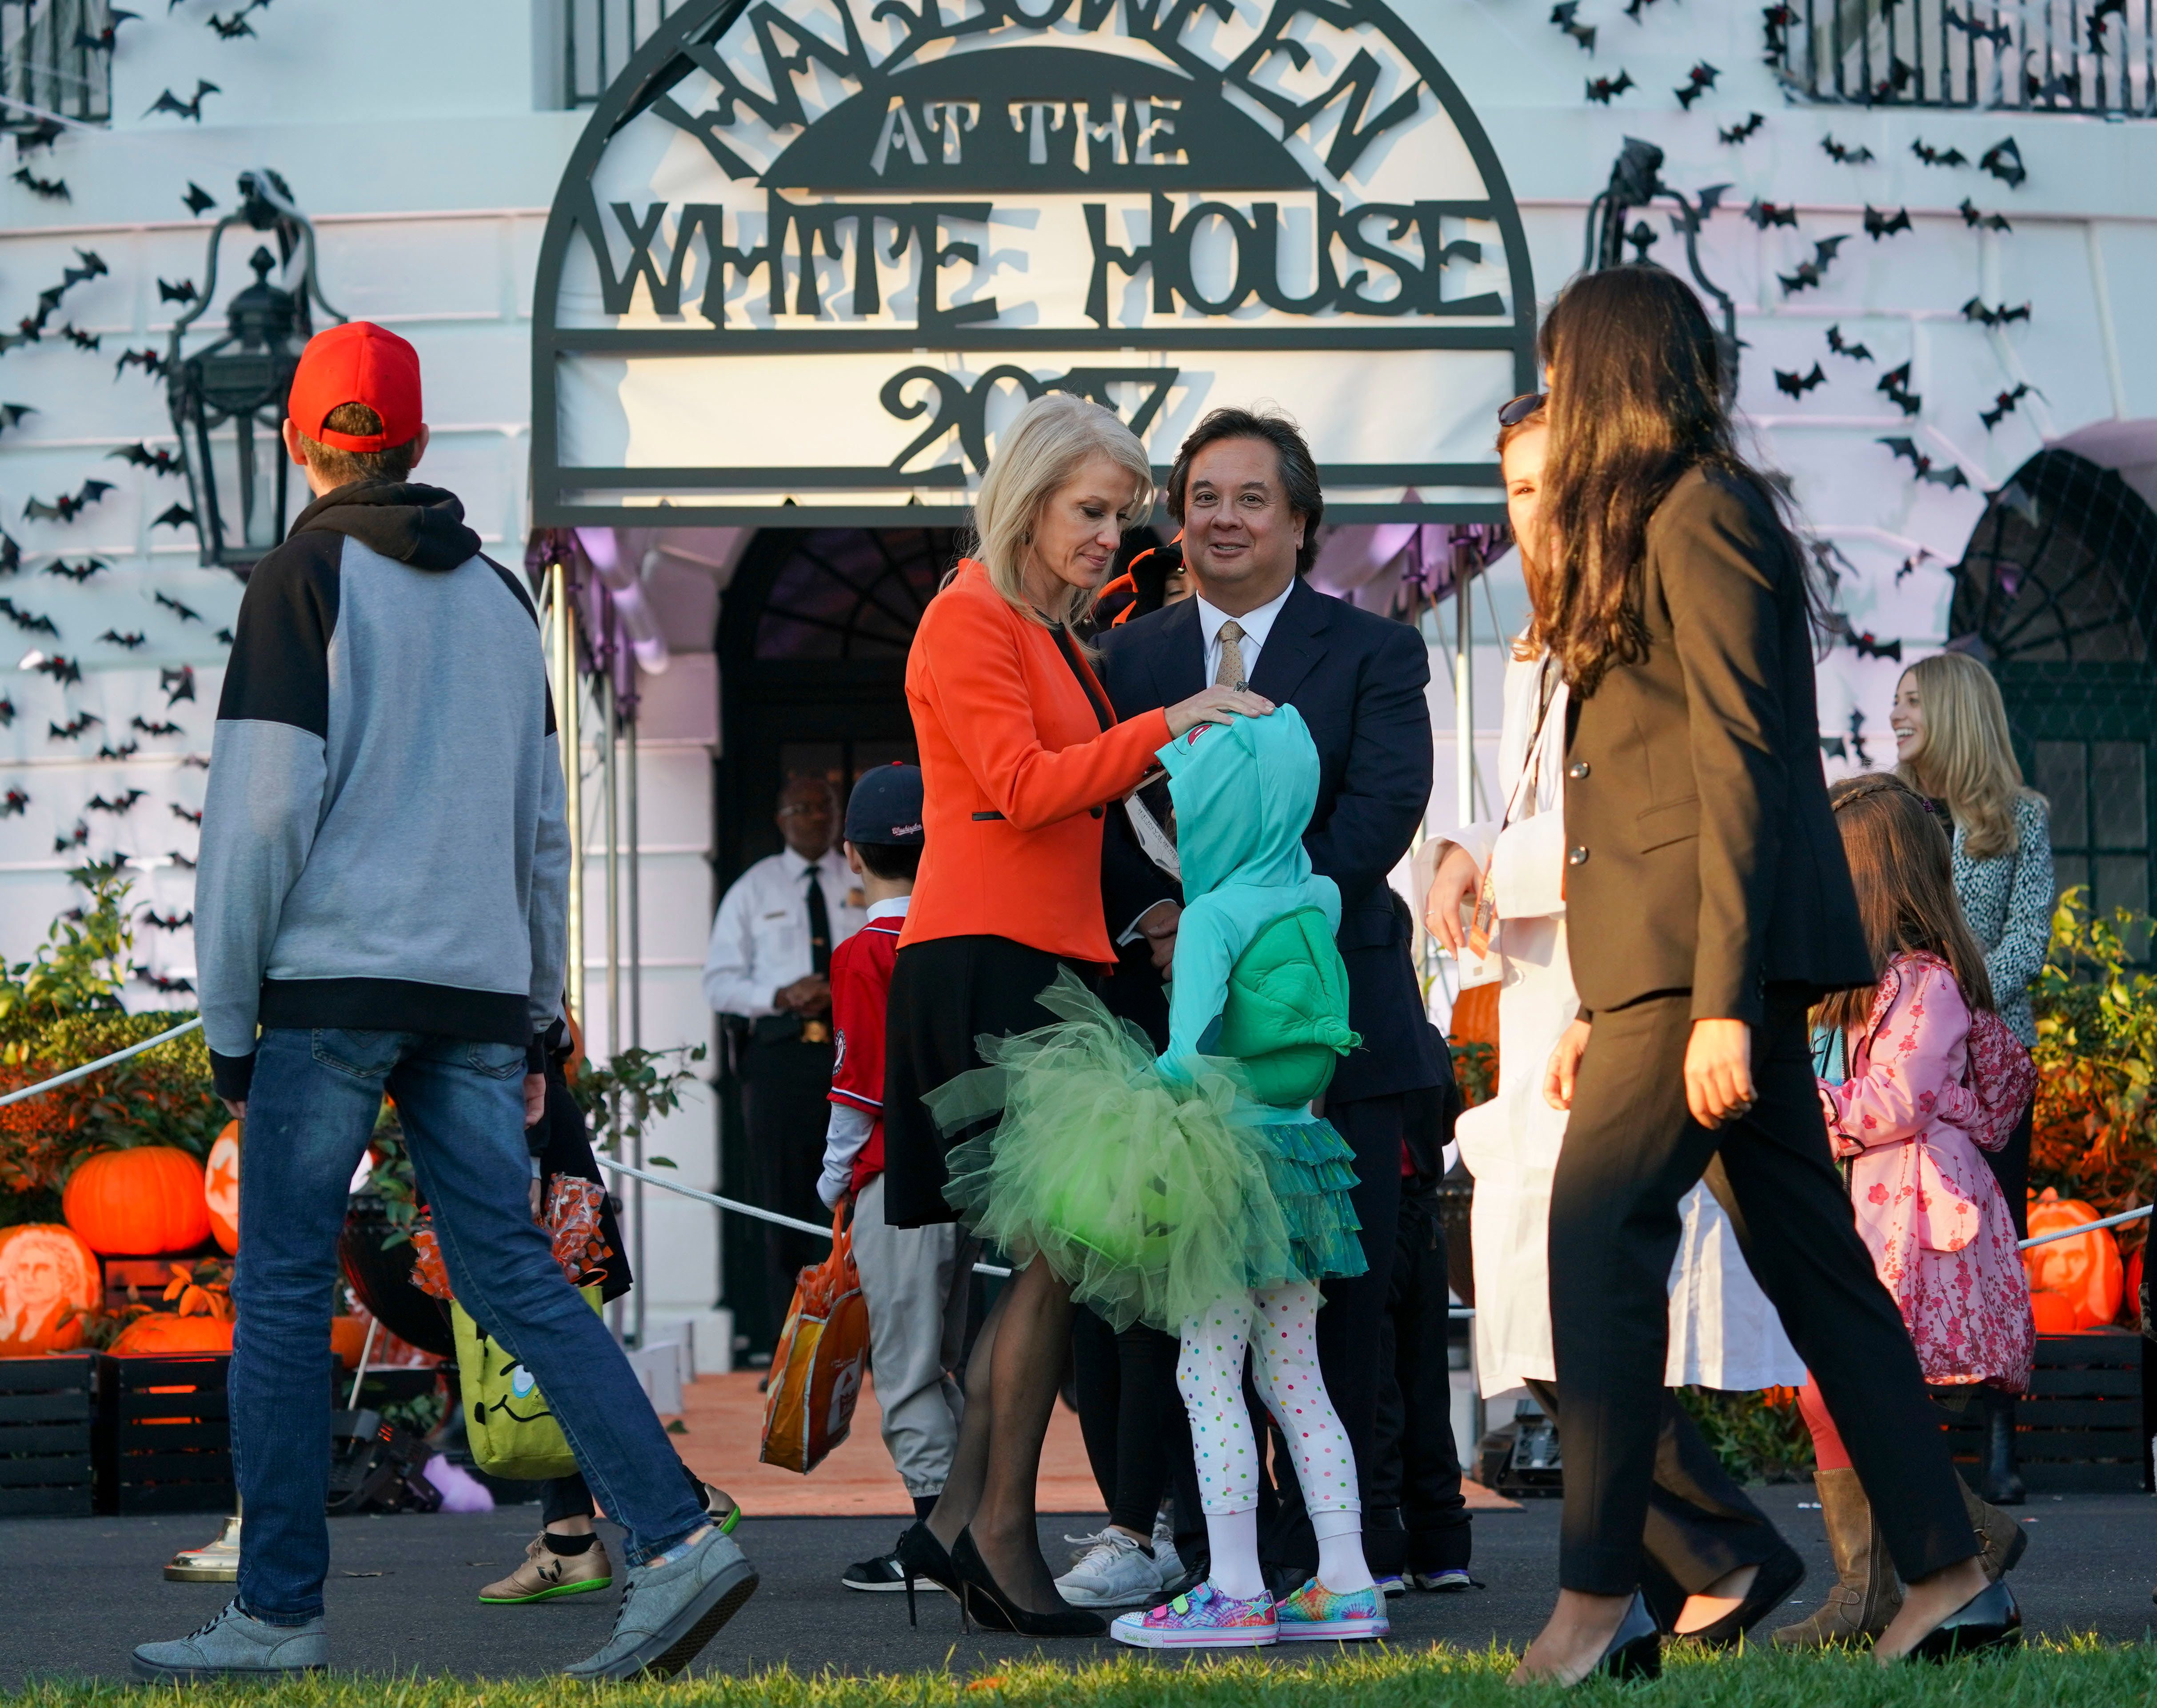 Counselor to the President Kellyanne Conway, center, and her husband George Conway, right, greet guests on the South Lawn of the White House in Washington during a Halloween event welcoming children from the Washington area and children of military families to trick-or-treat, Monday, Oct. 30, 2017. (AP Photo/Pablo Martinez Monsivais)